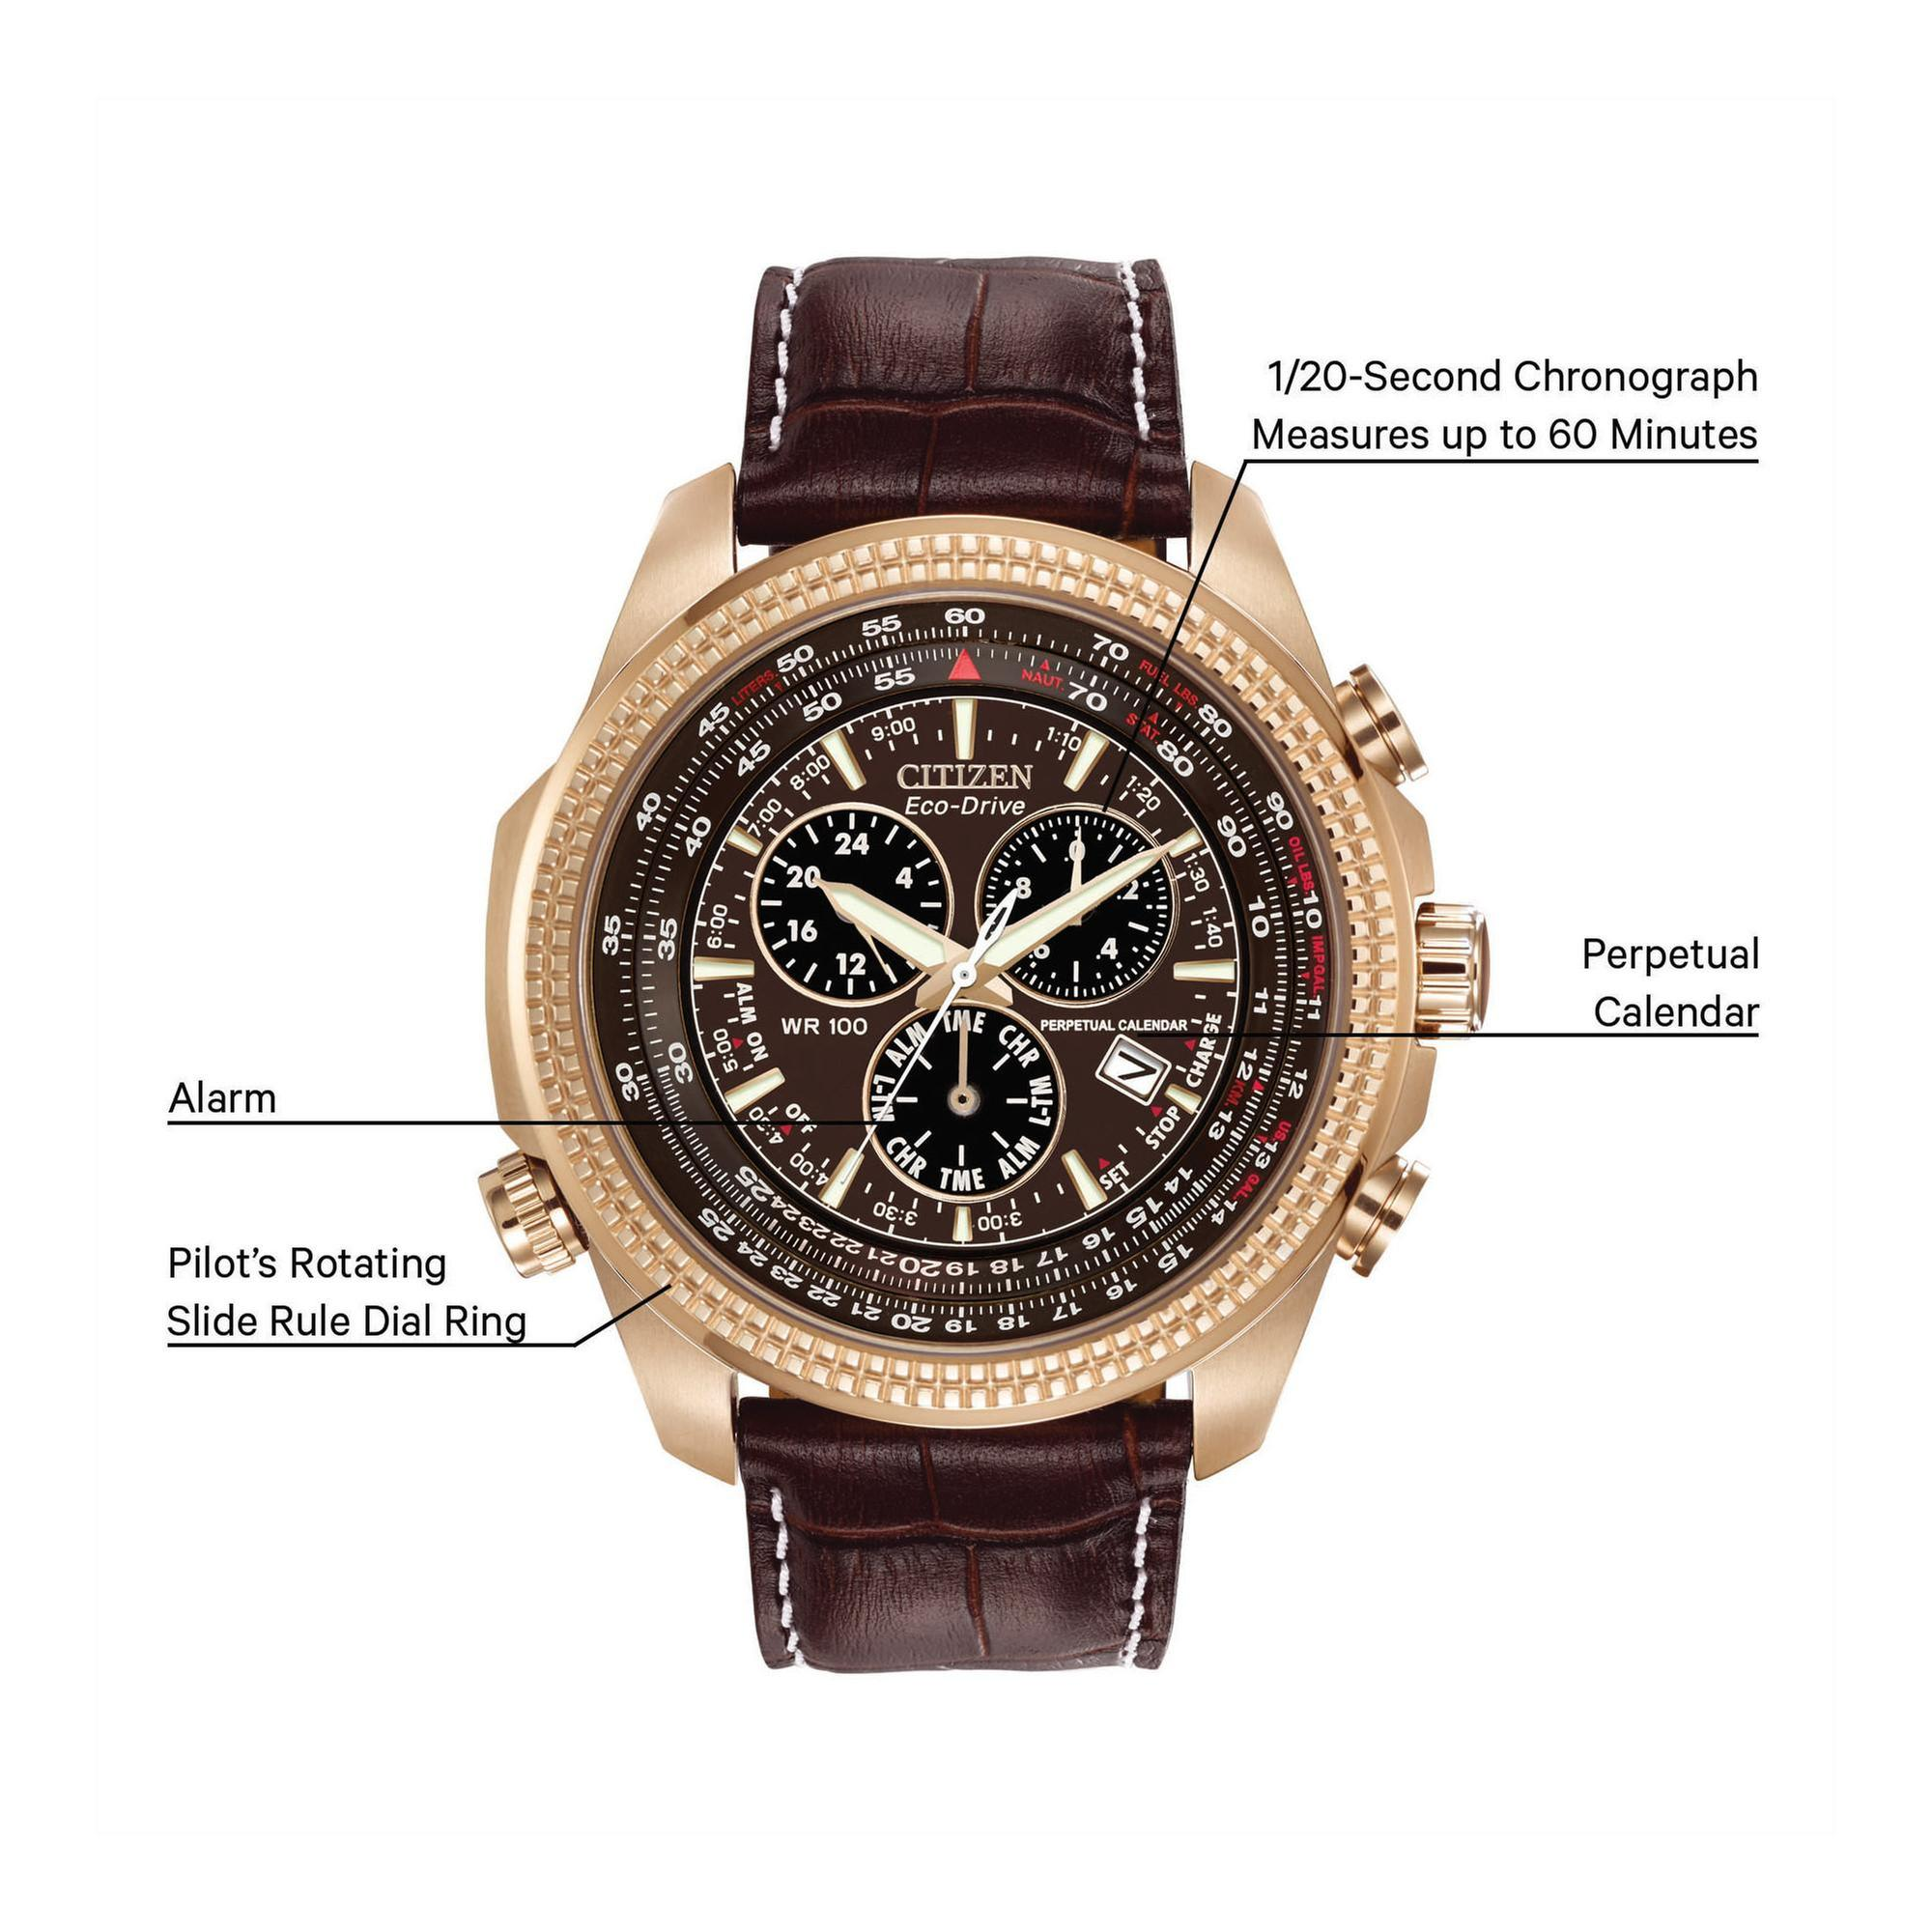 Mens Citizen Perpetual Calendar Chronograph Eco-Drive Watch